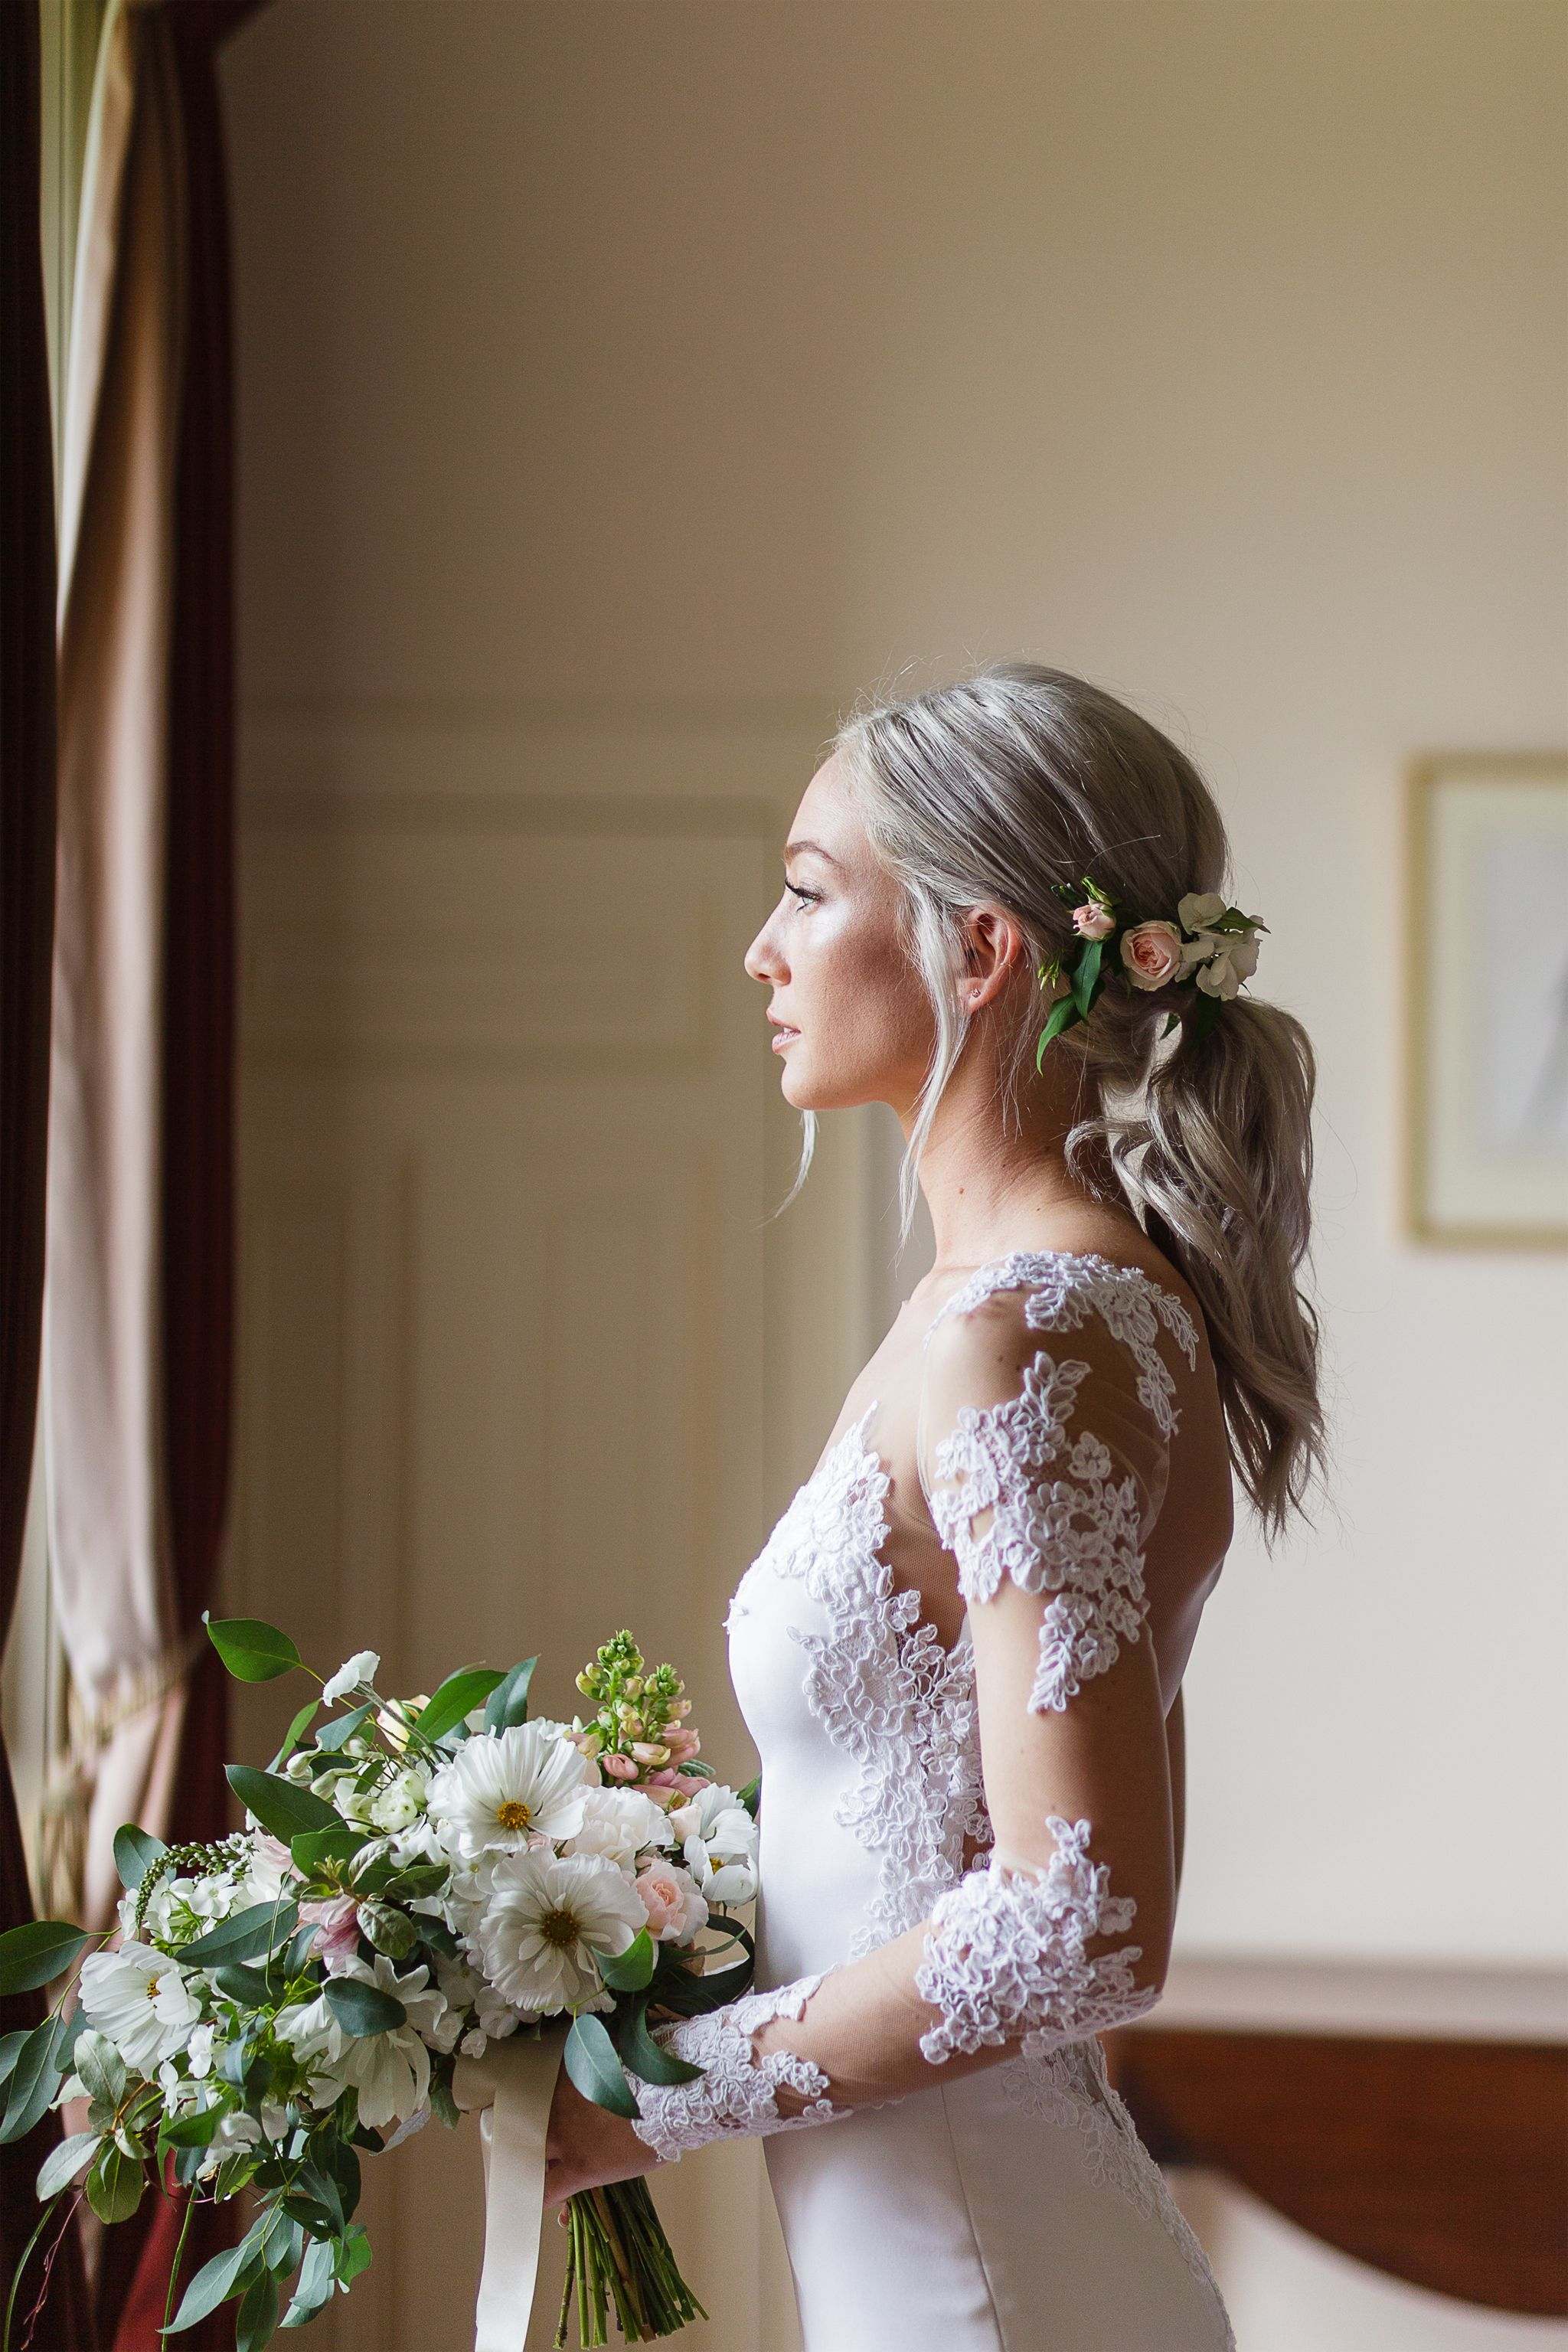 Romantic Low Ponytail With Fresh Roses | Bridal ponytail, Bride hairstyles, Wedding ponytail ...